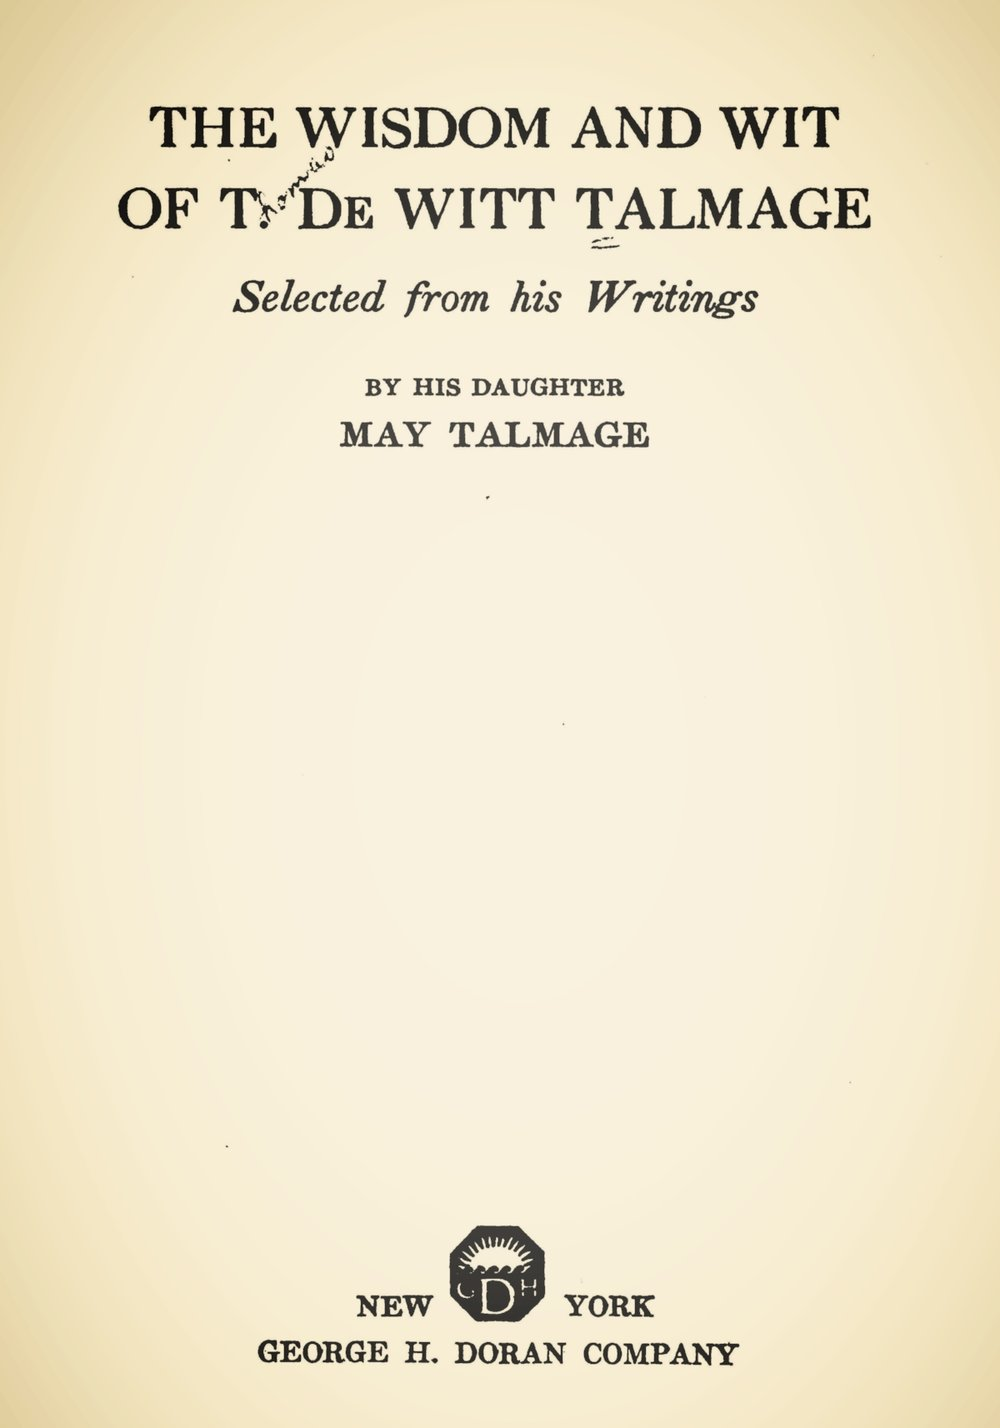 Talmage, Thomas De Witt, The Wit and Wisdom of T. De Witt Talmage Title Page.jpg